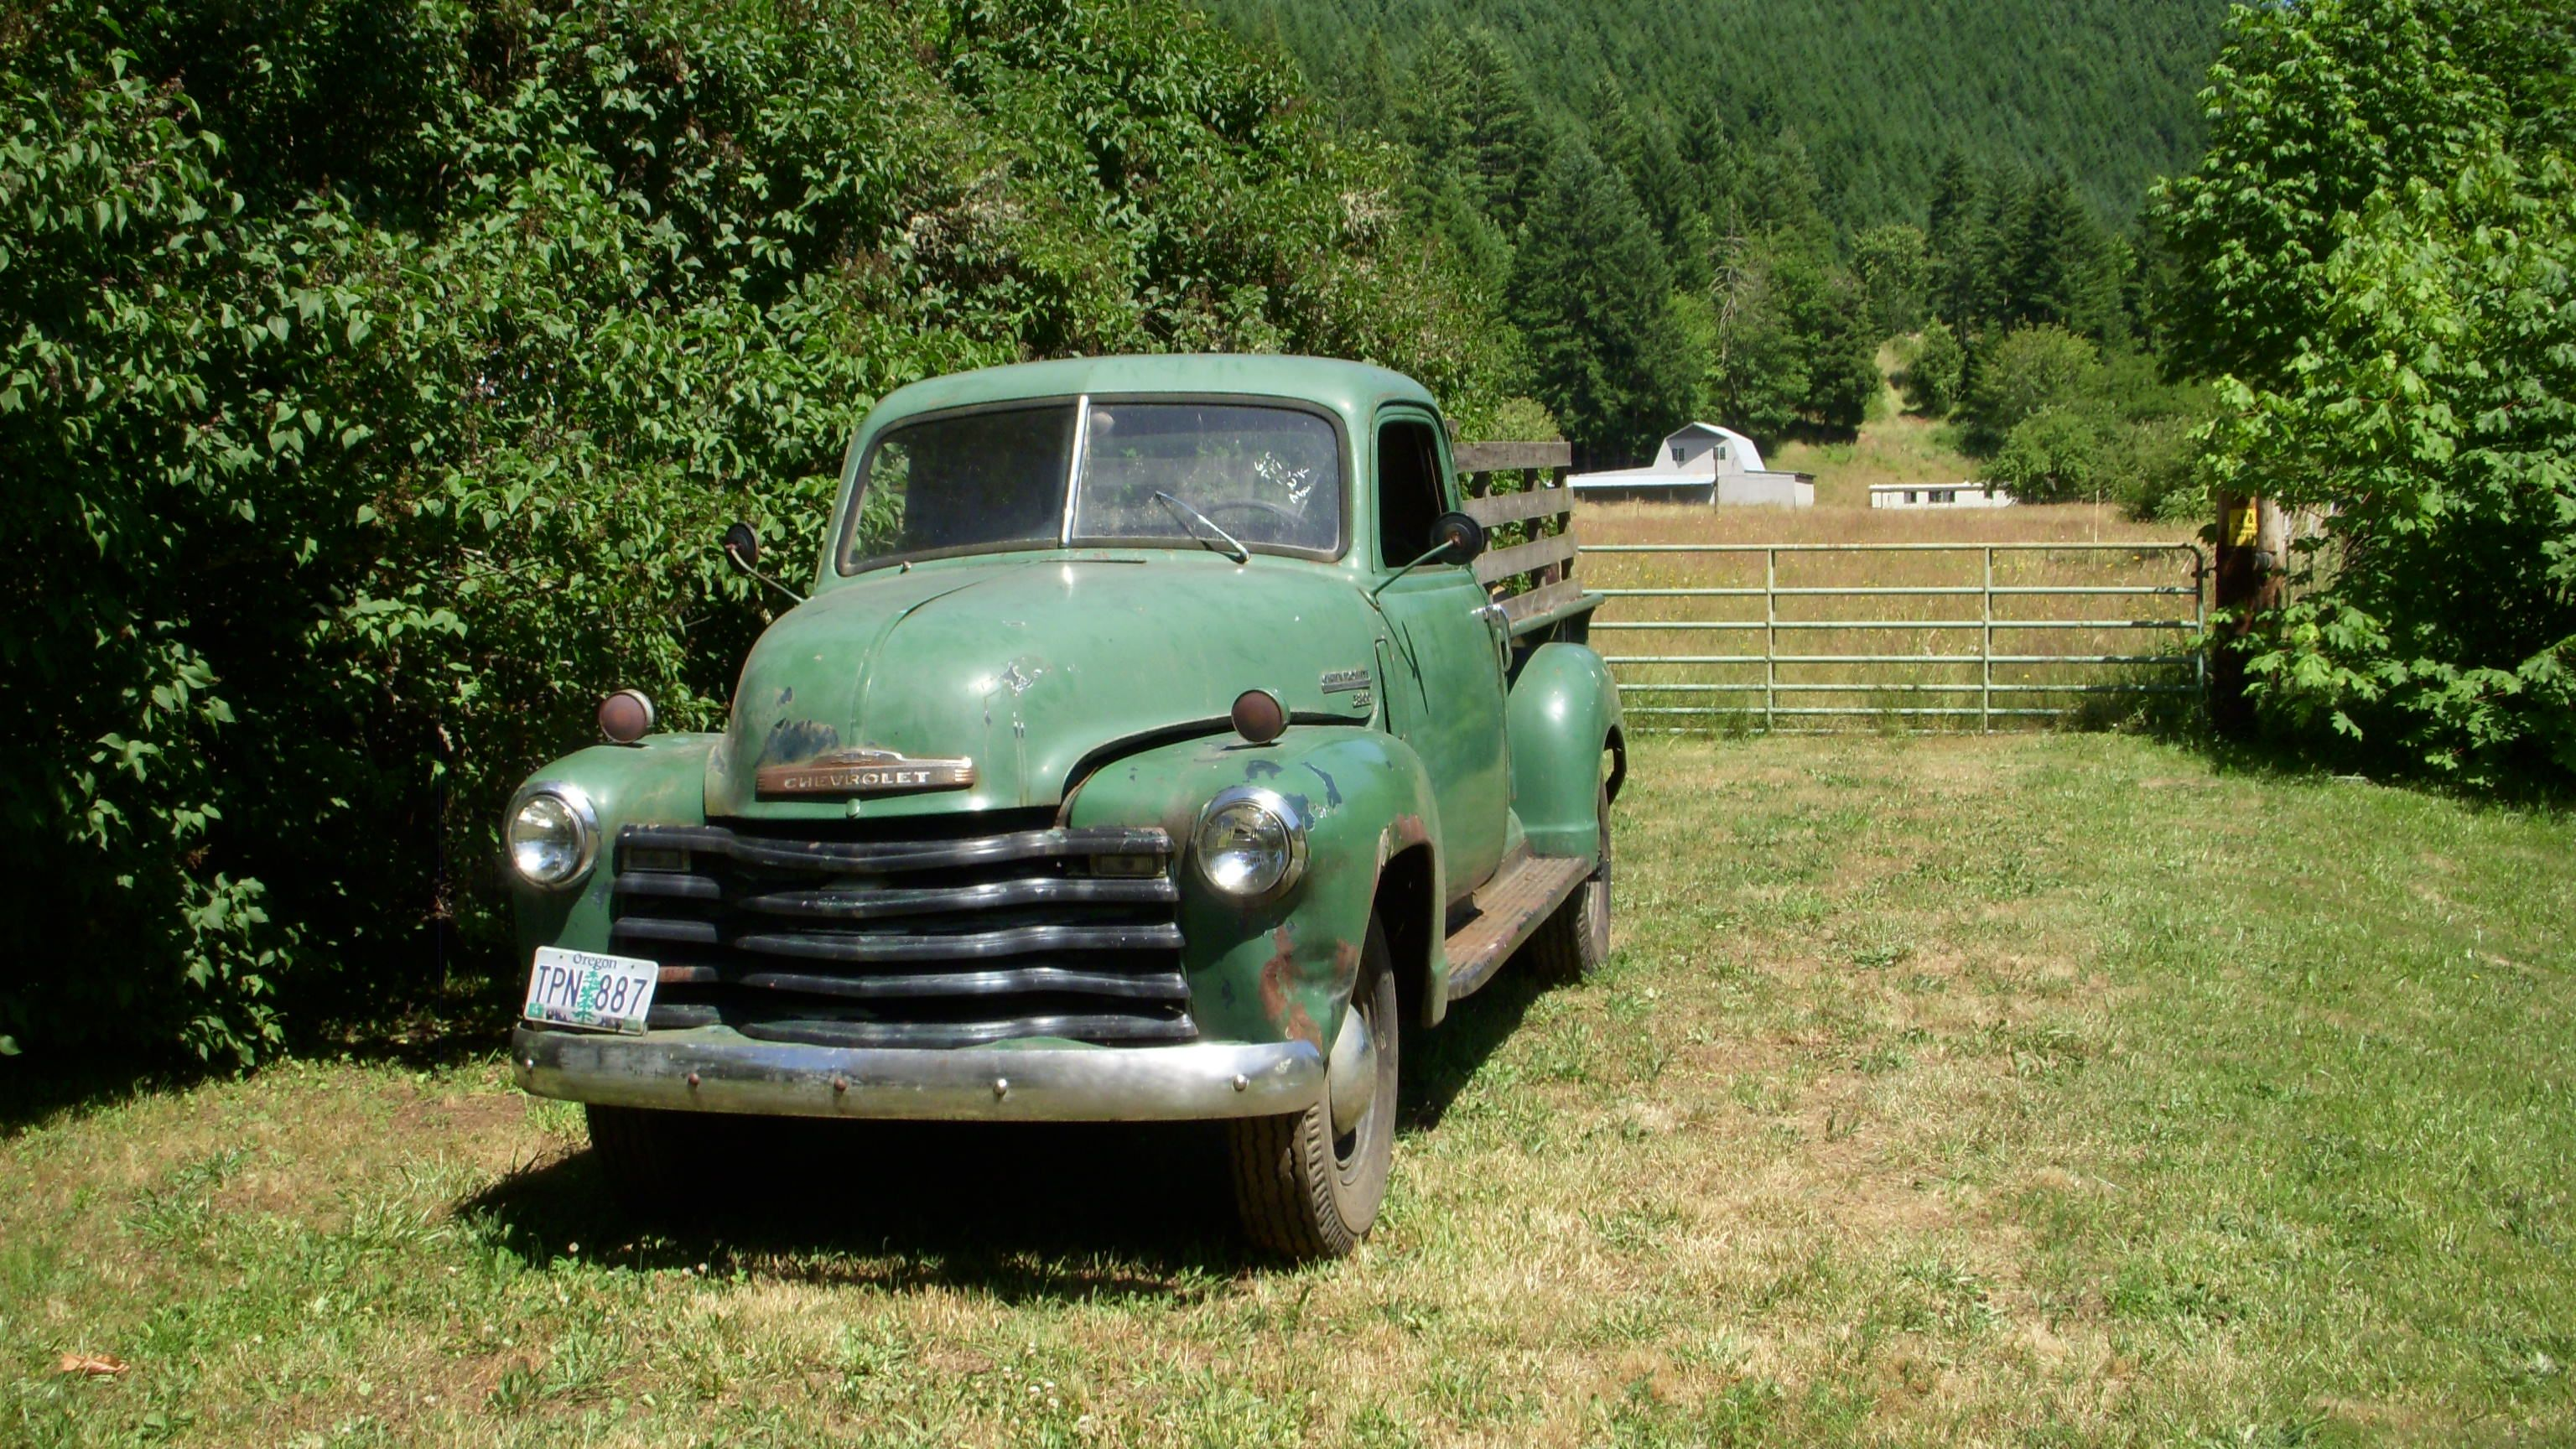 old farm trucks for sale - Google Search | Old Trucks | Pinterest ...